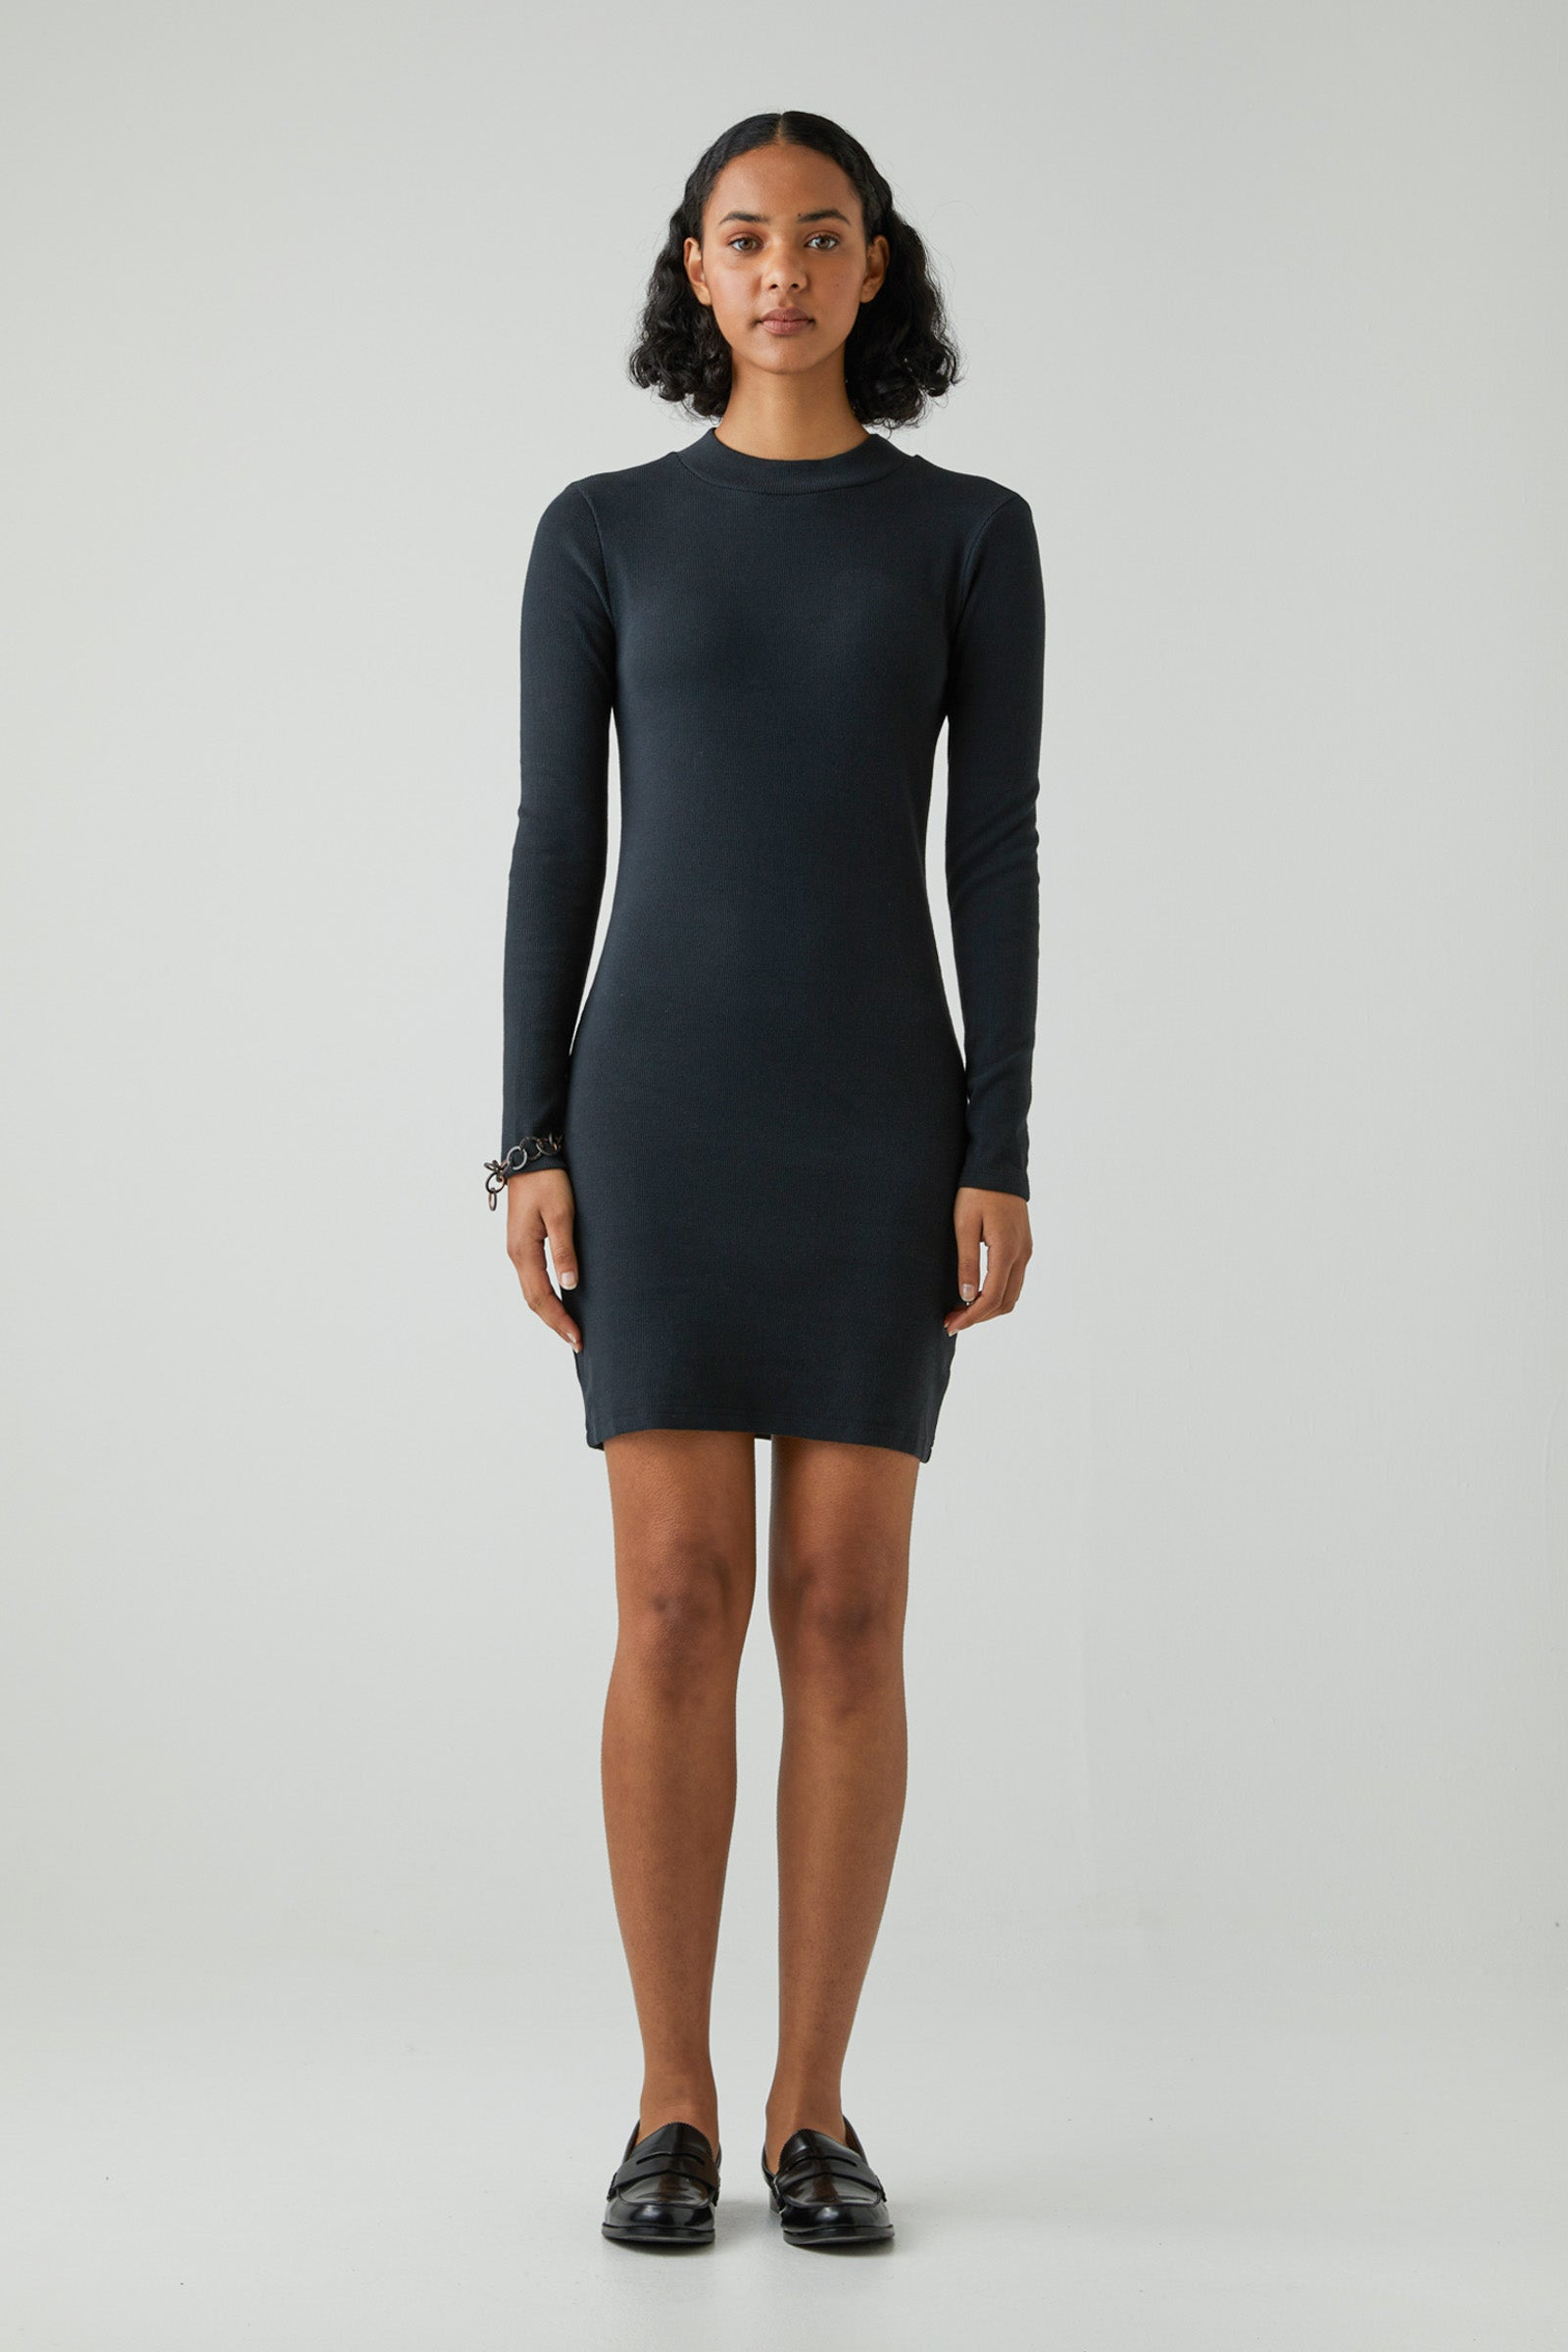 Jonesy Long Sleeve Dress - Black